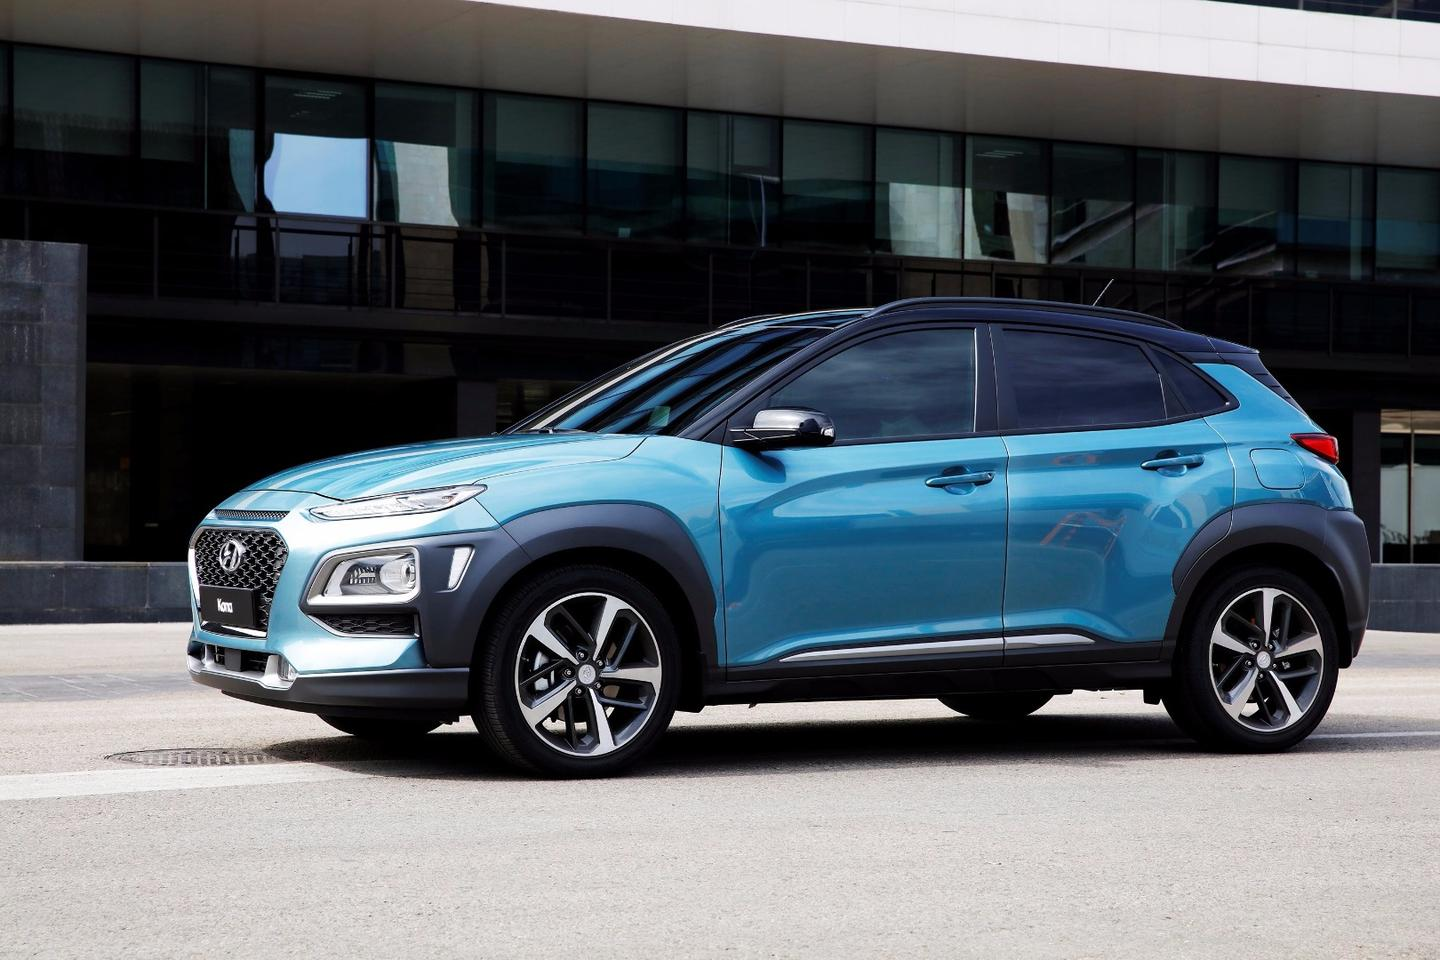 The nose of the Kona borrows some styling cues fromCitroen